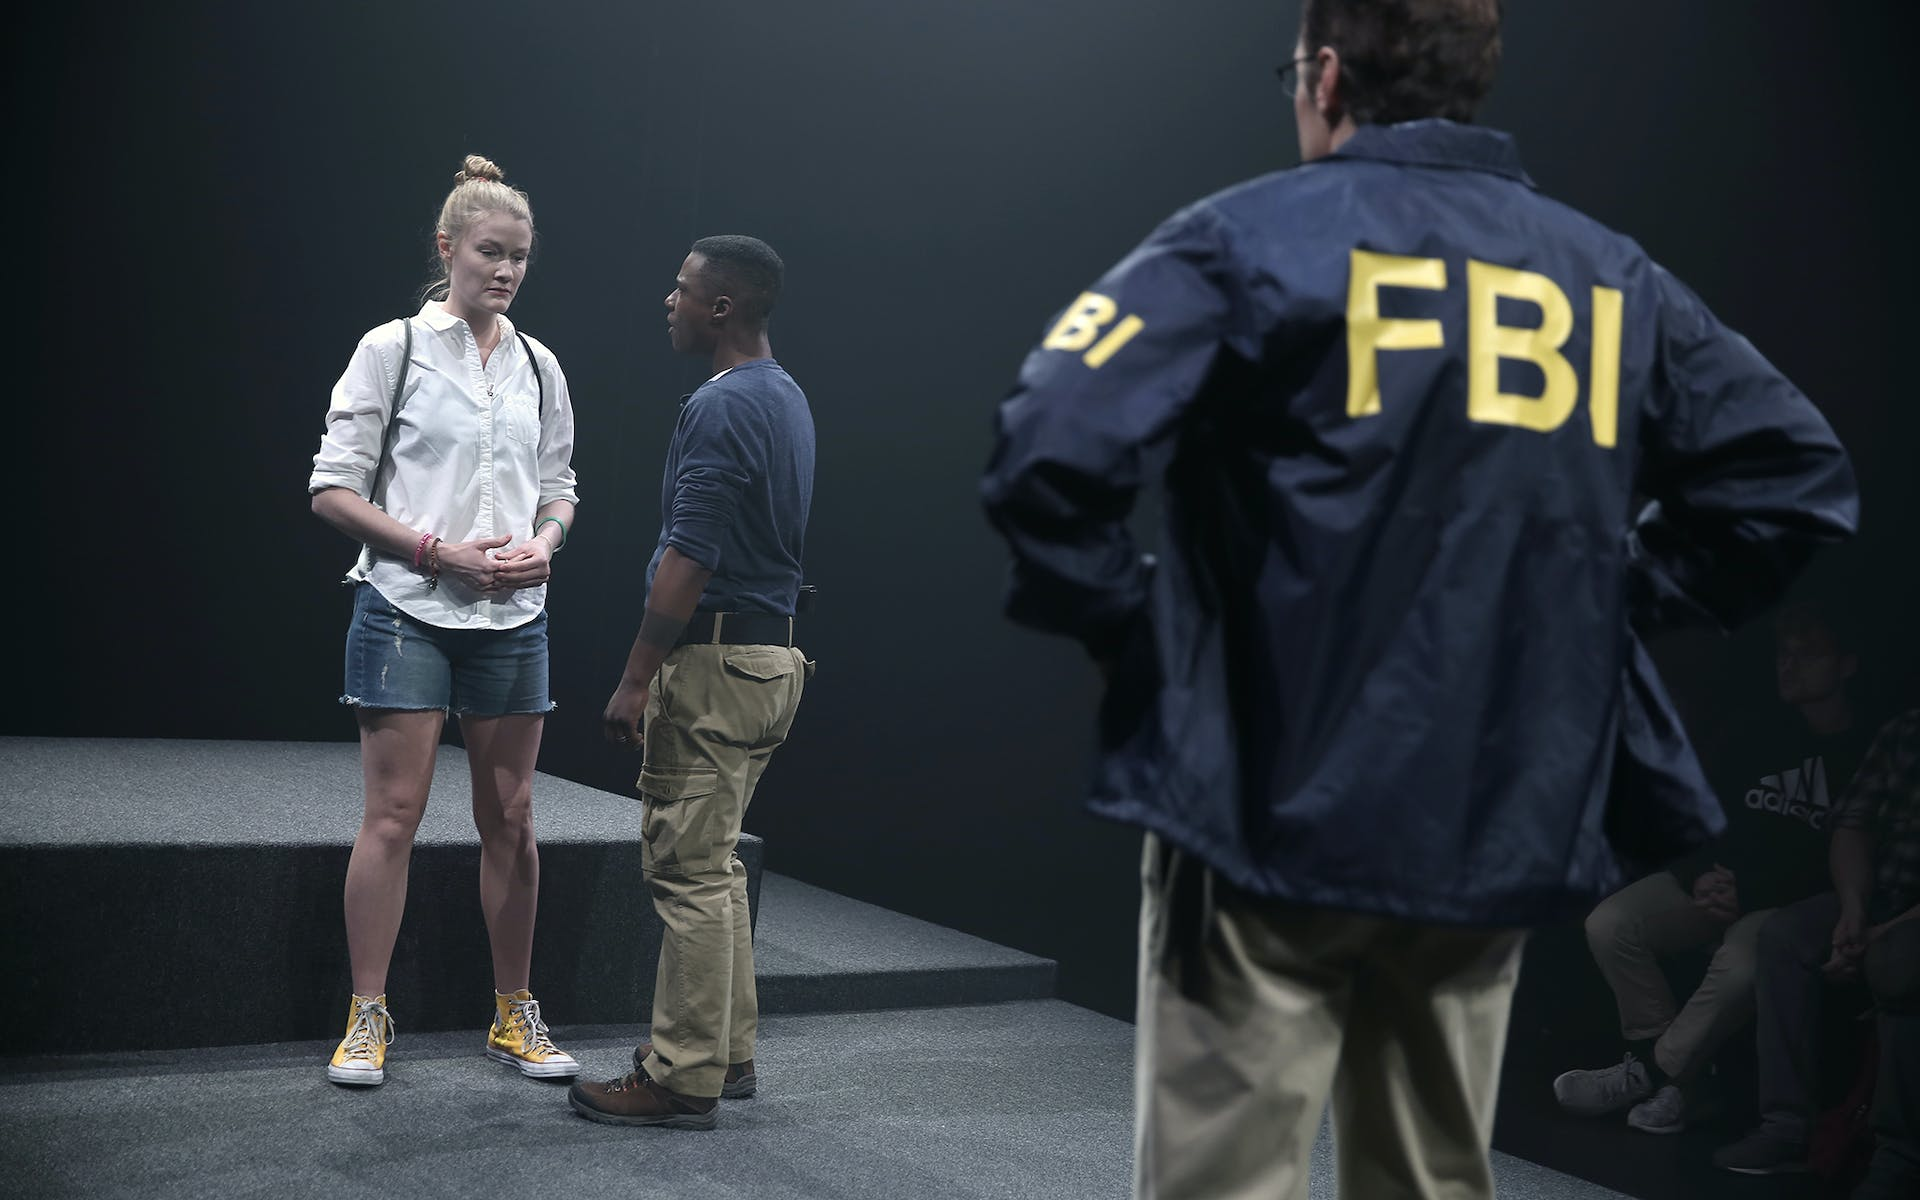 Woman being questioned by FBI agents.